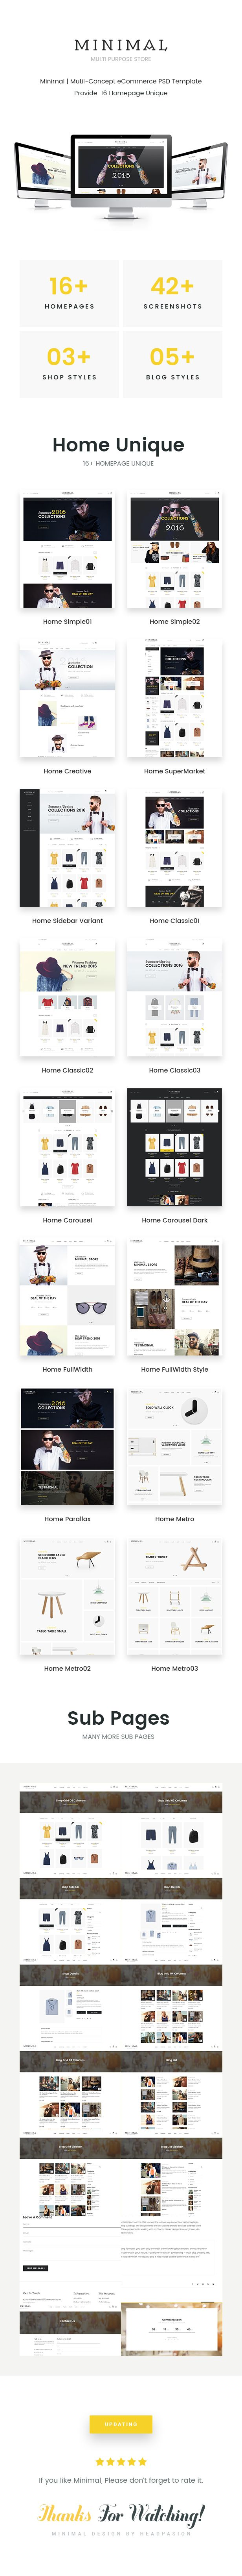 39 best HTML Templates images on Pinterest